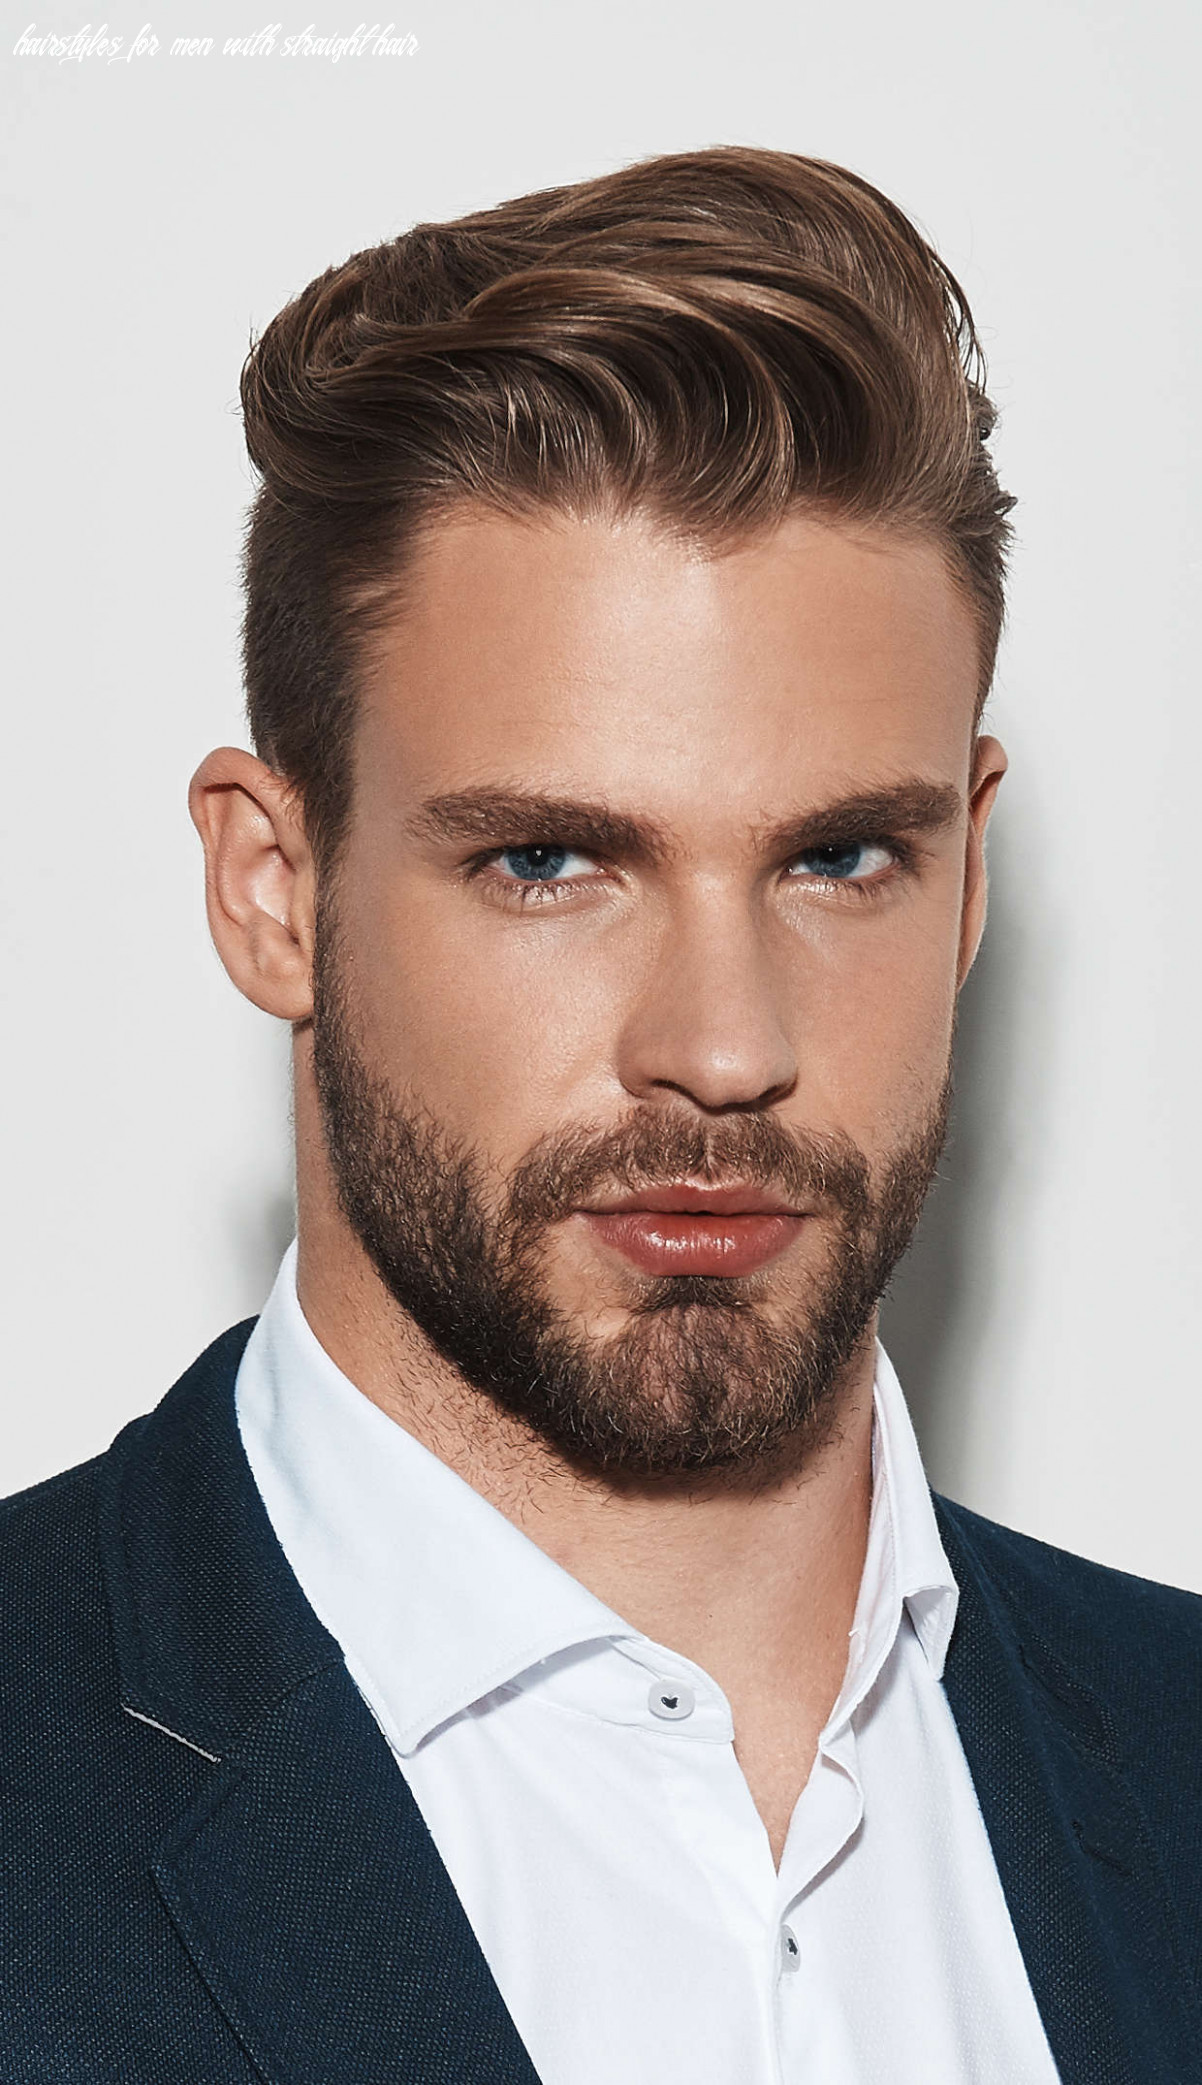 11 exquisite hairstyles for men with straight hair hairstyles for men with straight hair